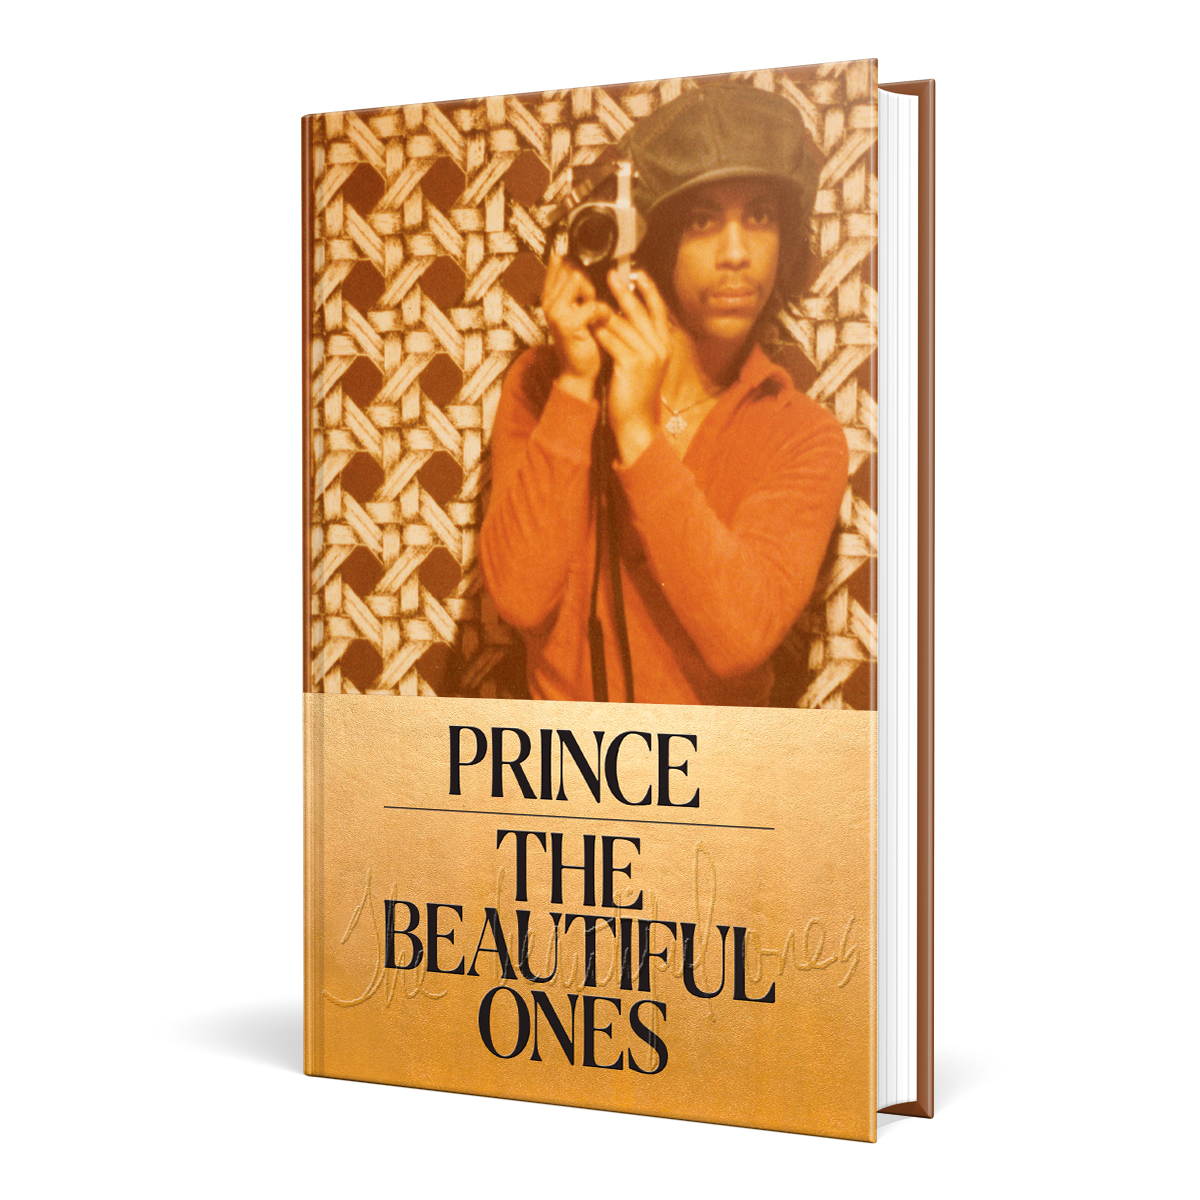 Prince - The Beautiful Ones (Memoir)